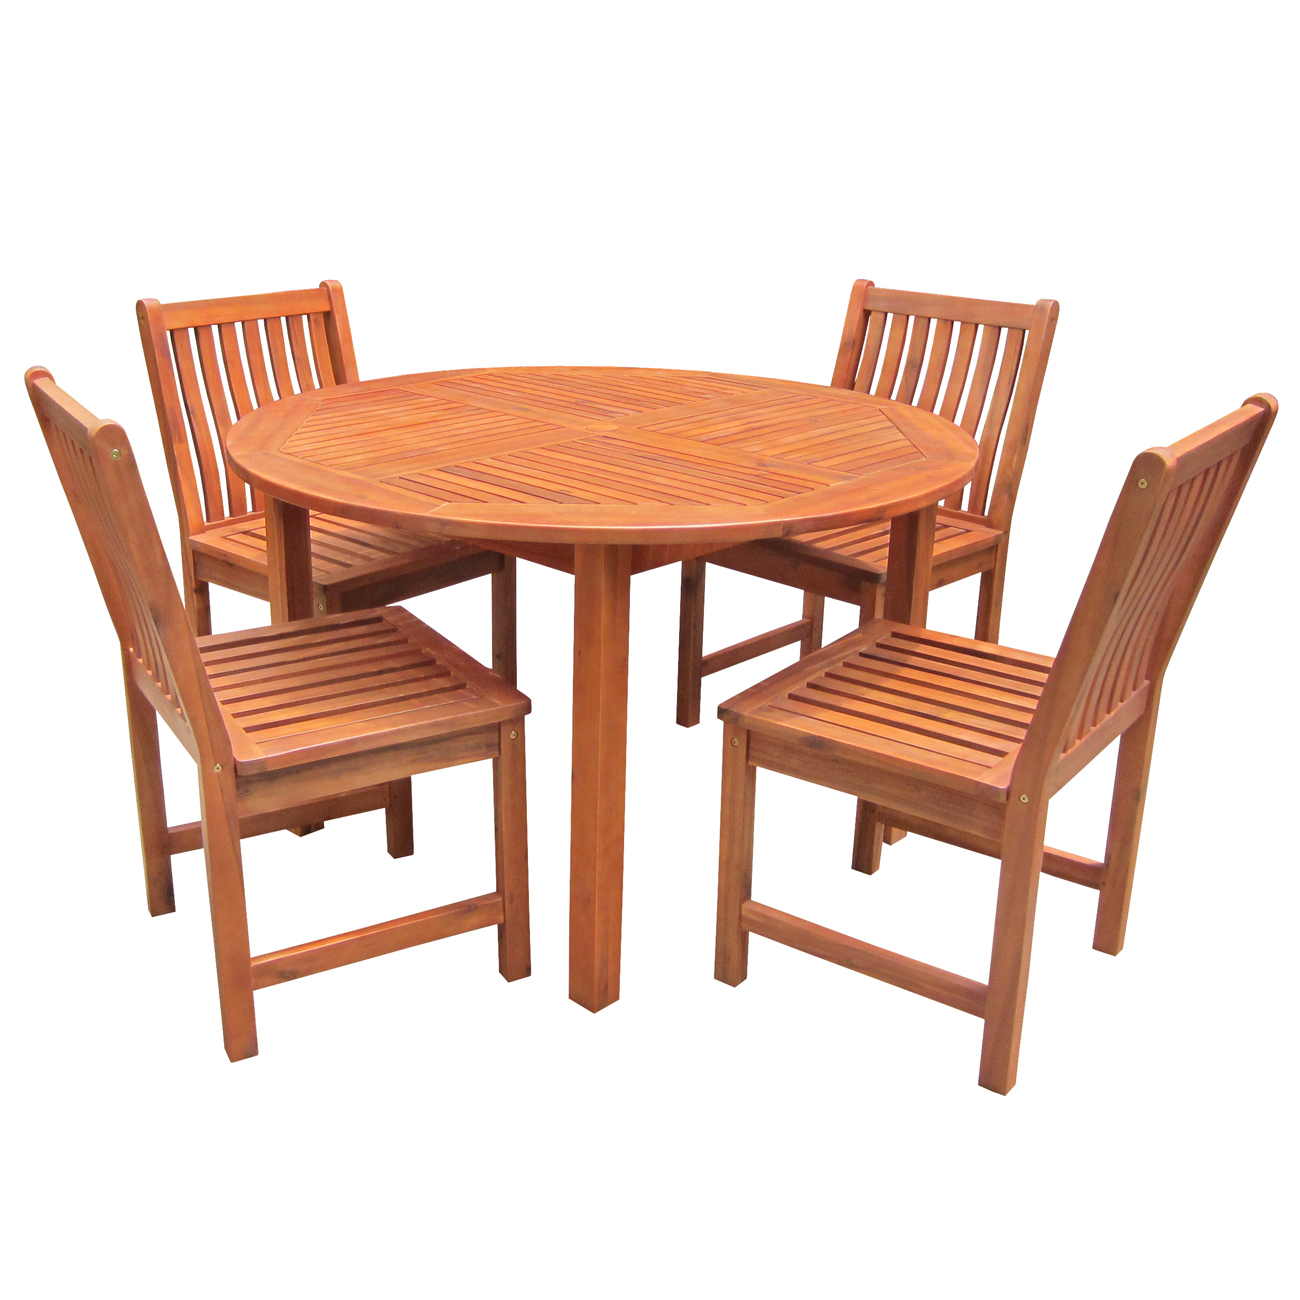 Solid wood outdoor table and chair set for Outdoor patio table and chairs